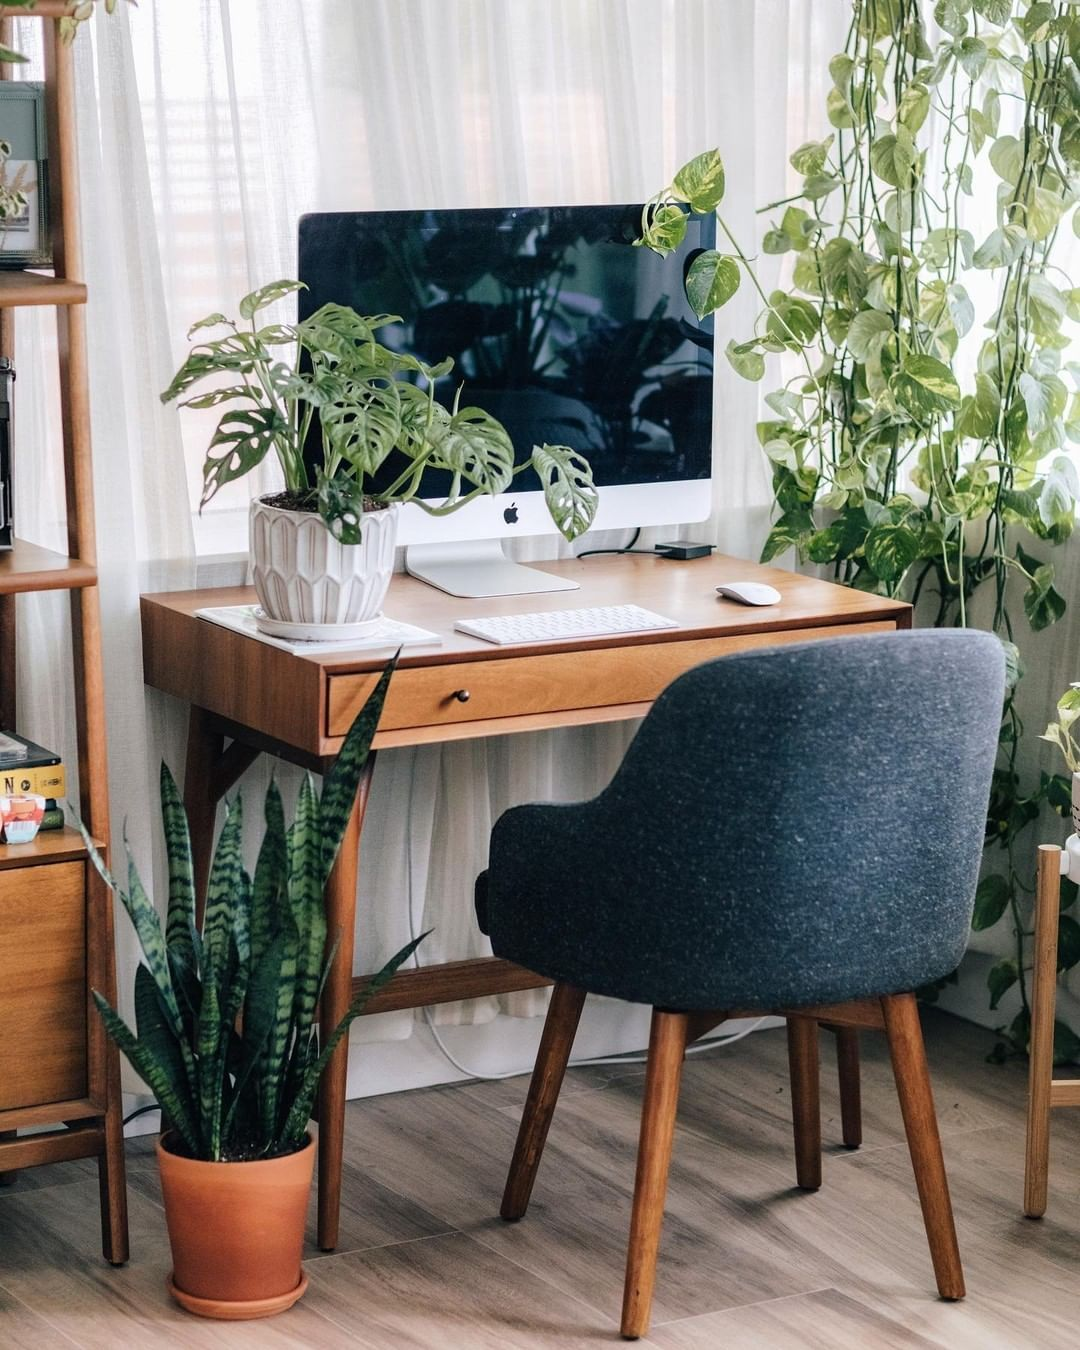 9 521 Likes 91 Comments West Elm Furniture Decor Westelm On Instagram Plants M In 2020 Mid Century Mini Desk Desks For Small Spaces Mid Century Modern Desk